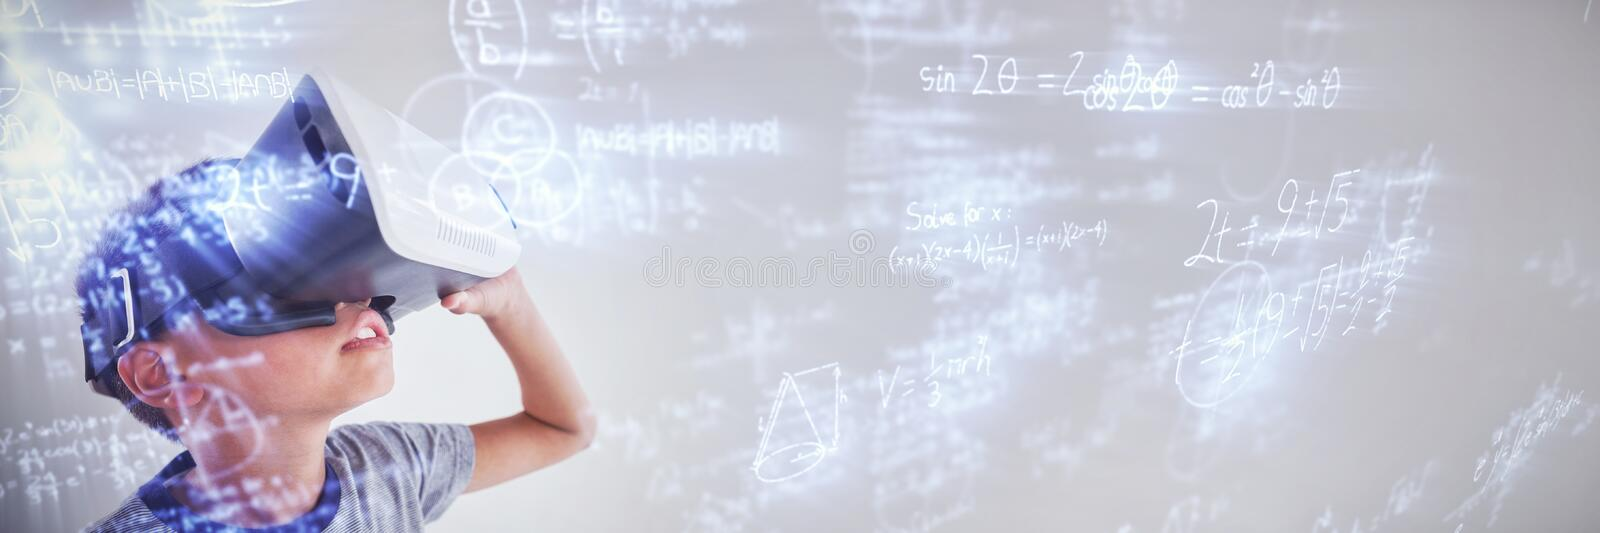 Composite image of digitally composite image of trigonometric equations with diagram and solution. Digitally composite image of trigonometric equations with royalty free illustration